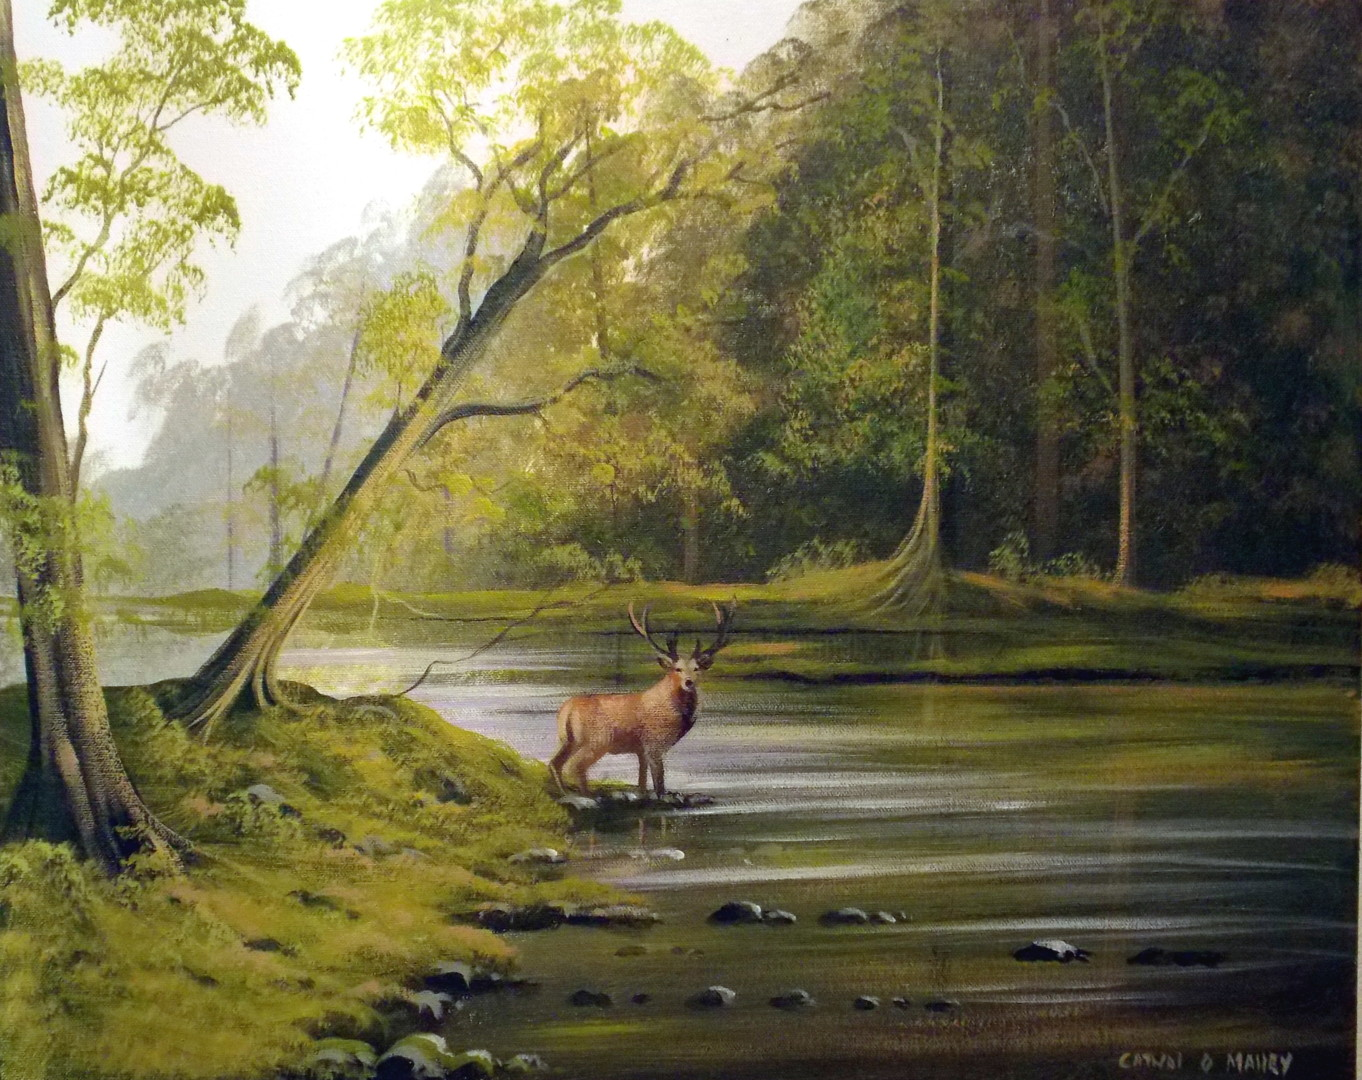 Cathal O Malley - the lone stag